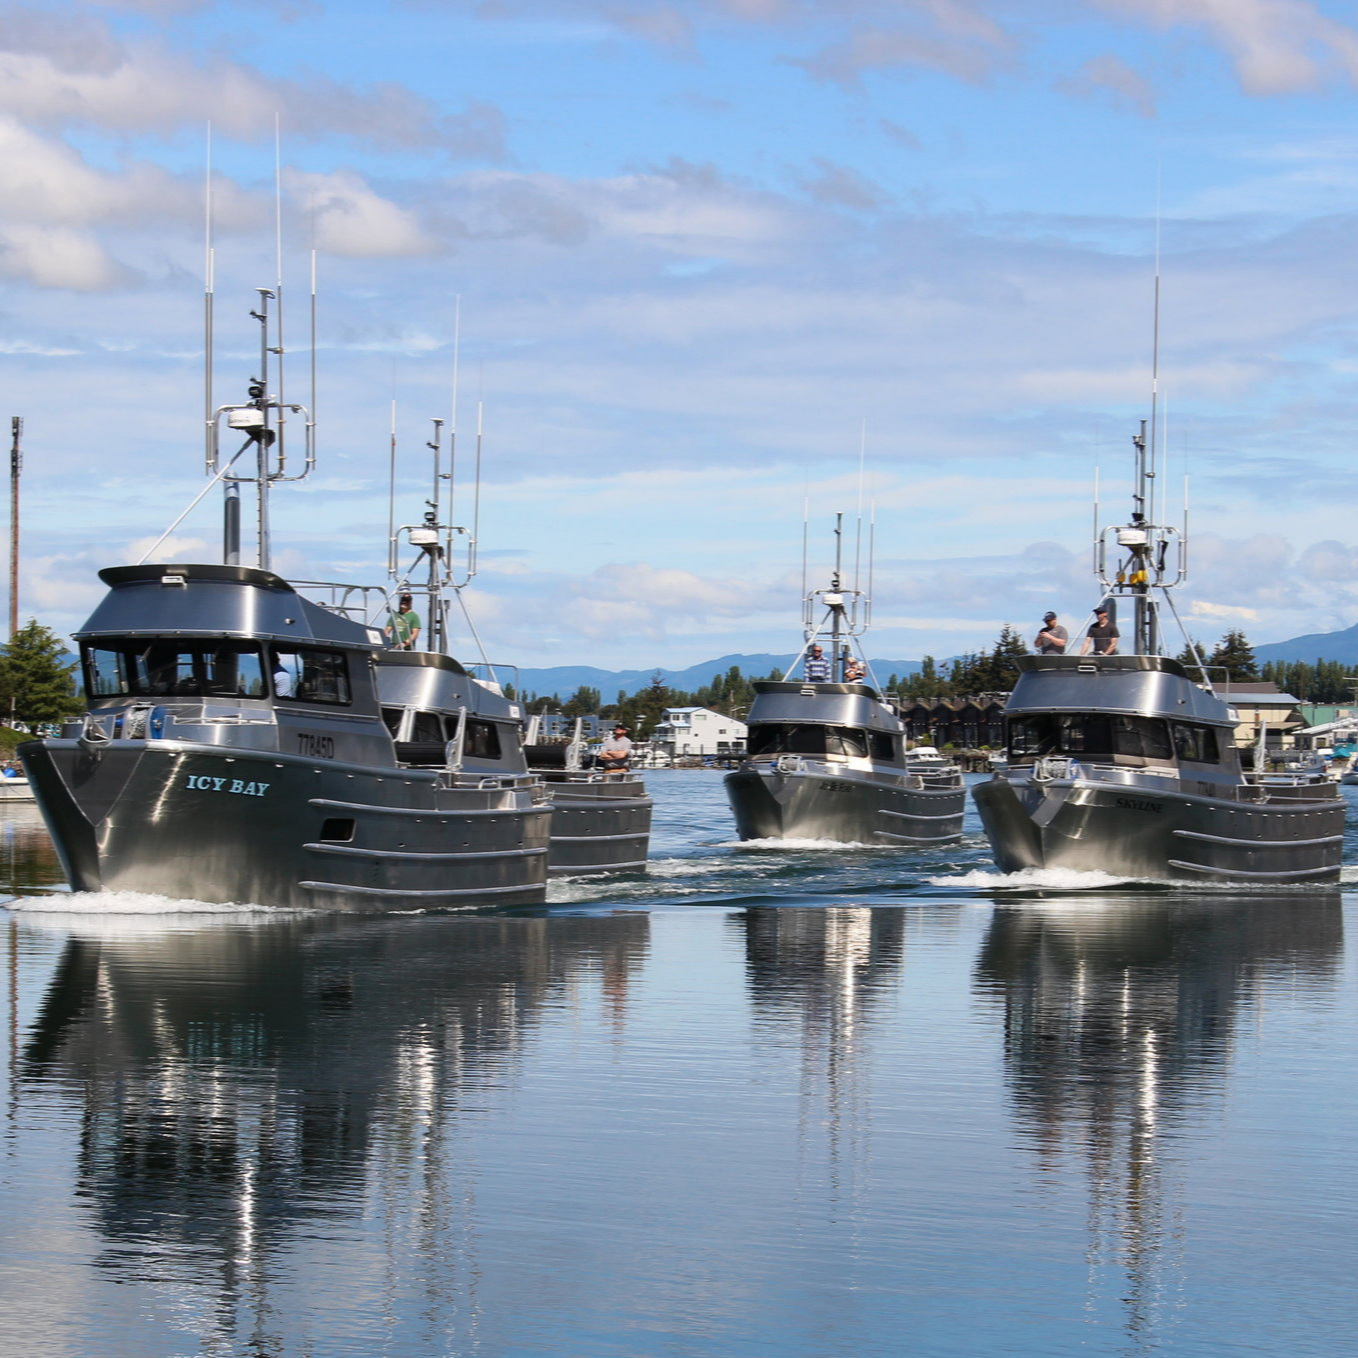 Brand new Bristol Bay boats built by Mavrik Marine - each one is outfitted with an IMS RSW system.